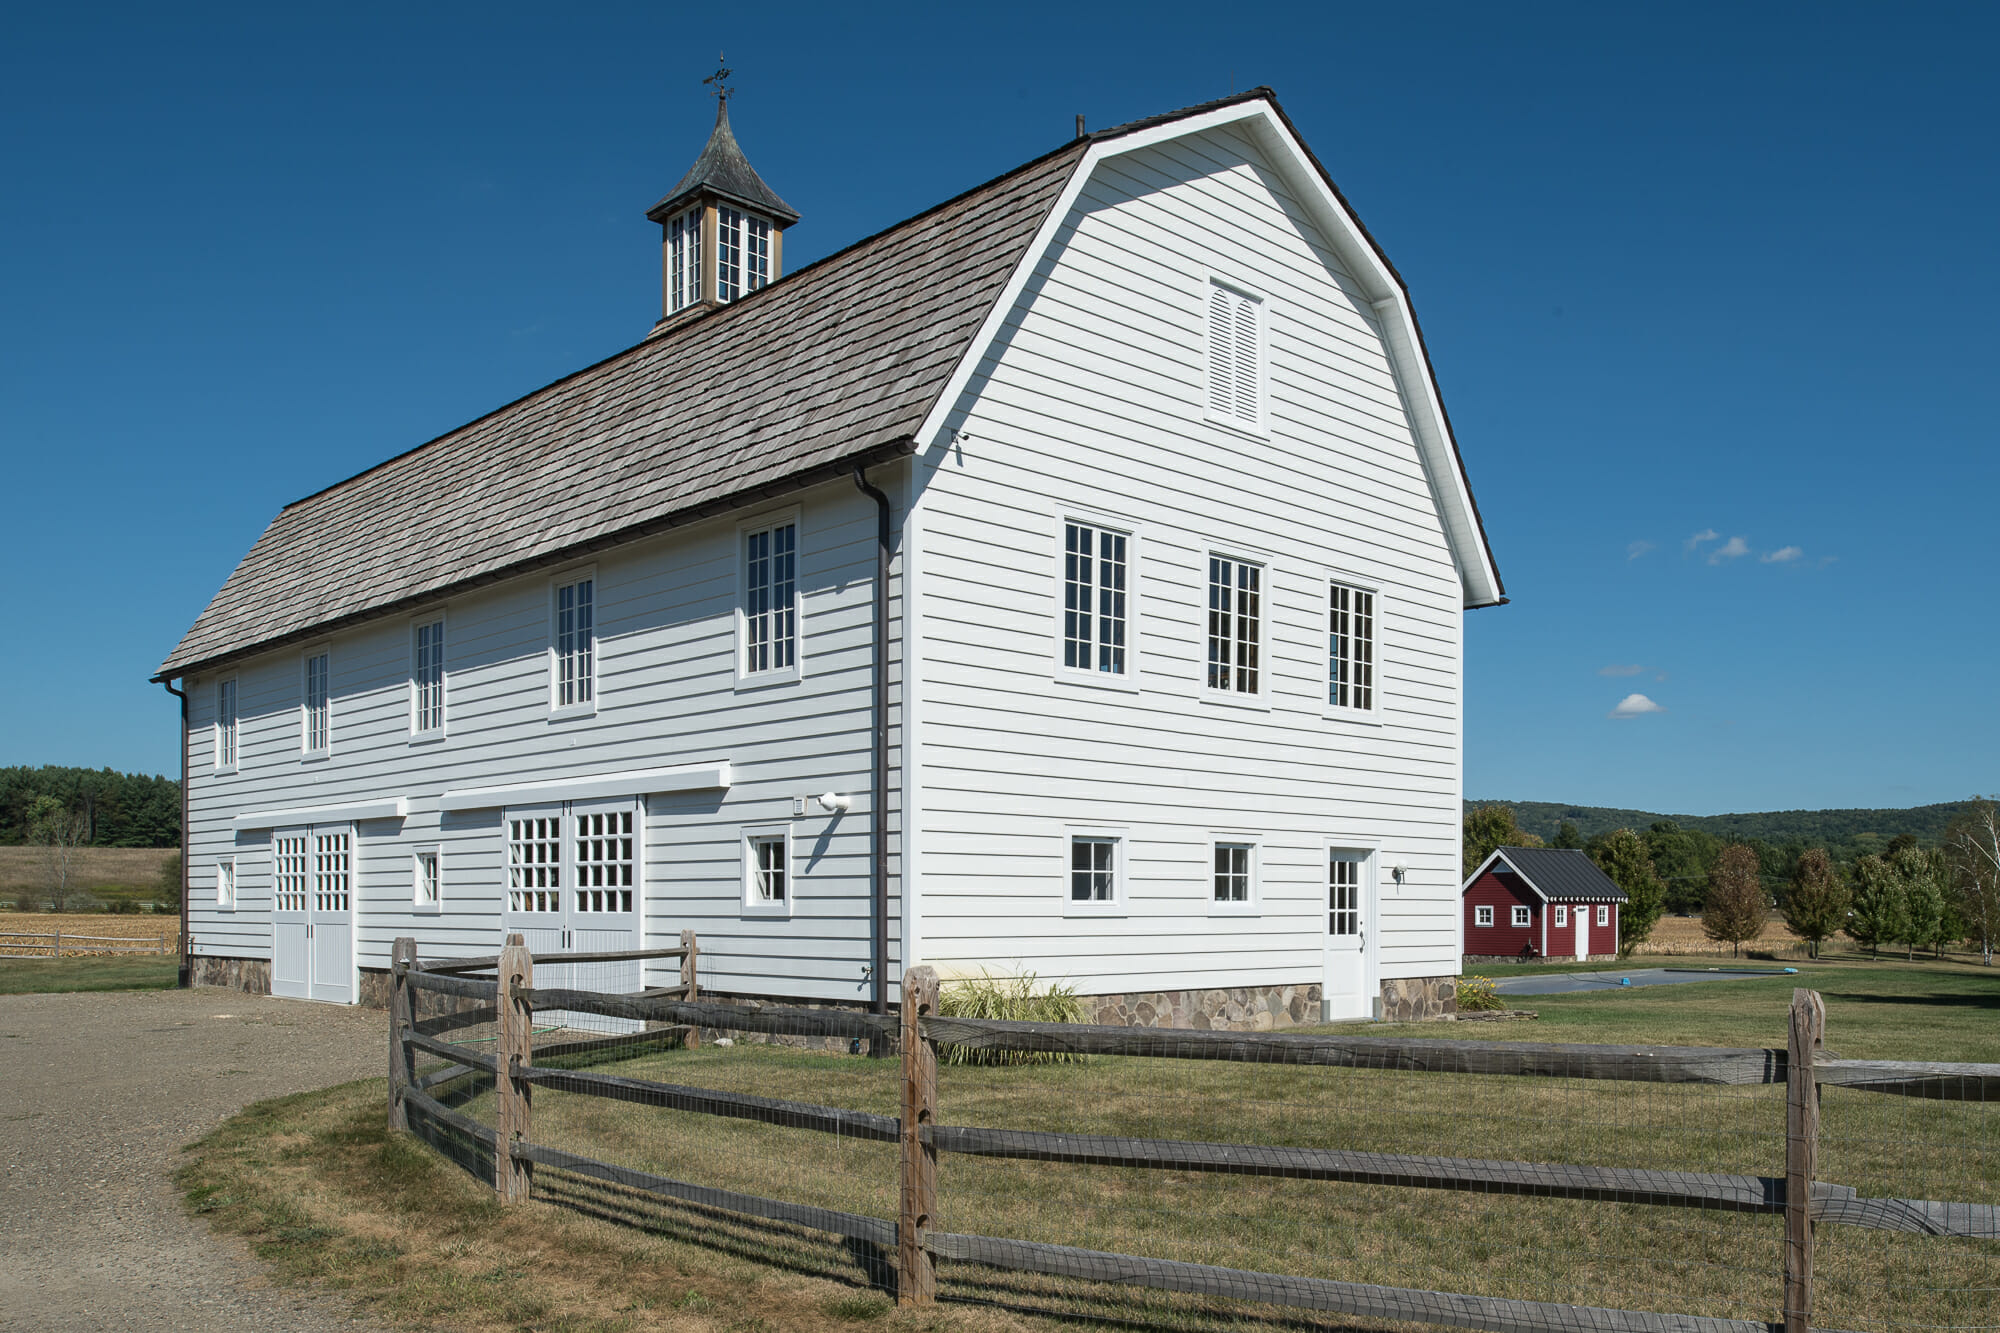 Exterior of Gambrel style Barn Eberhart Barn in Upstate NY